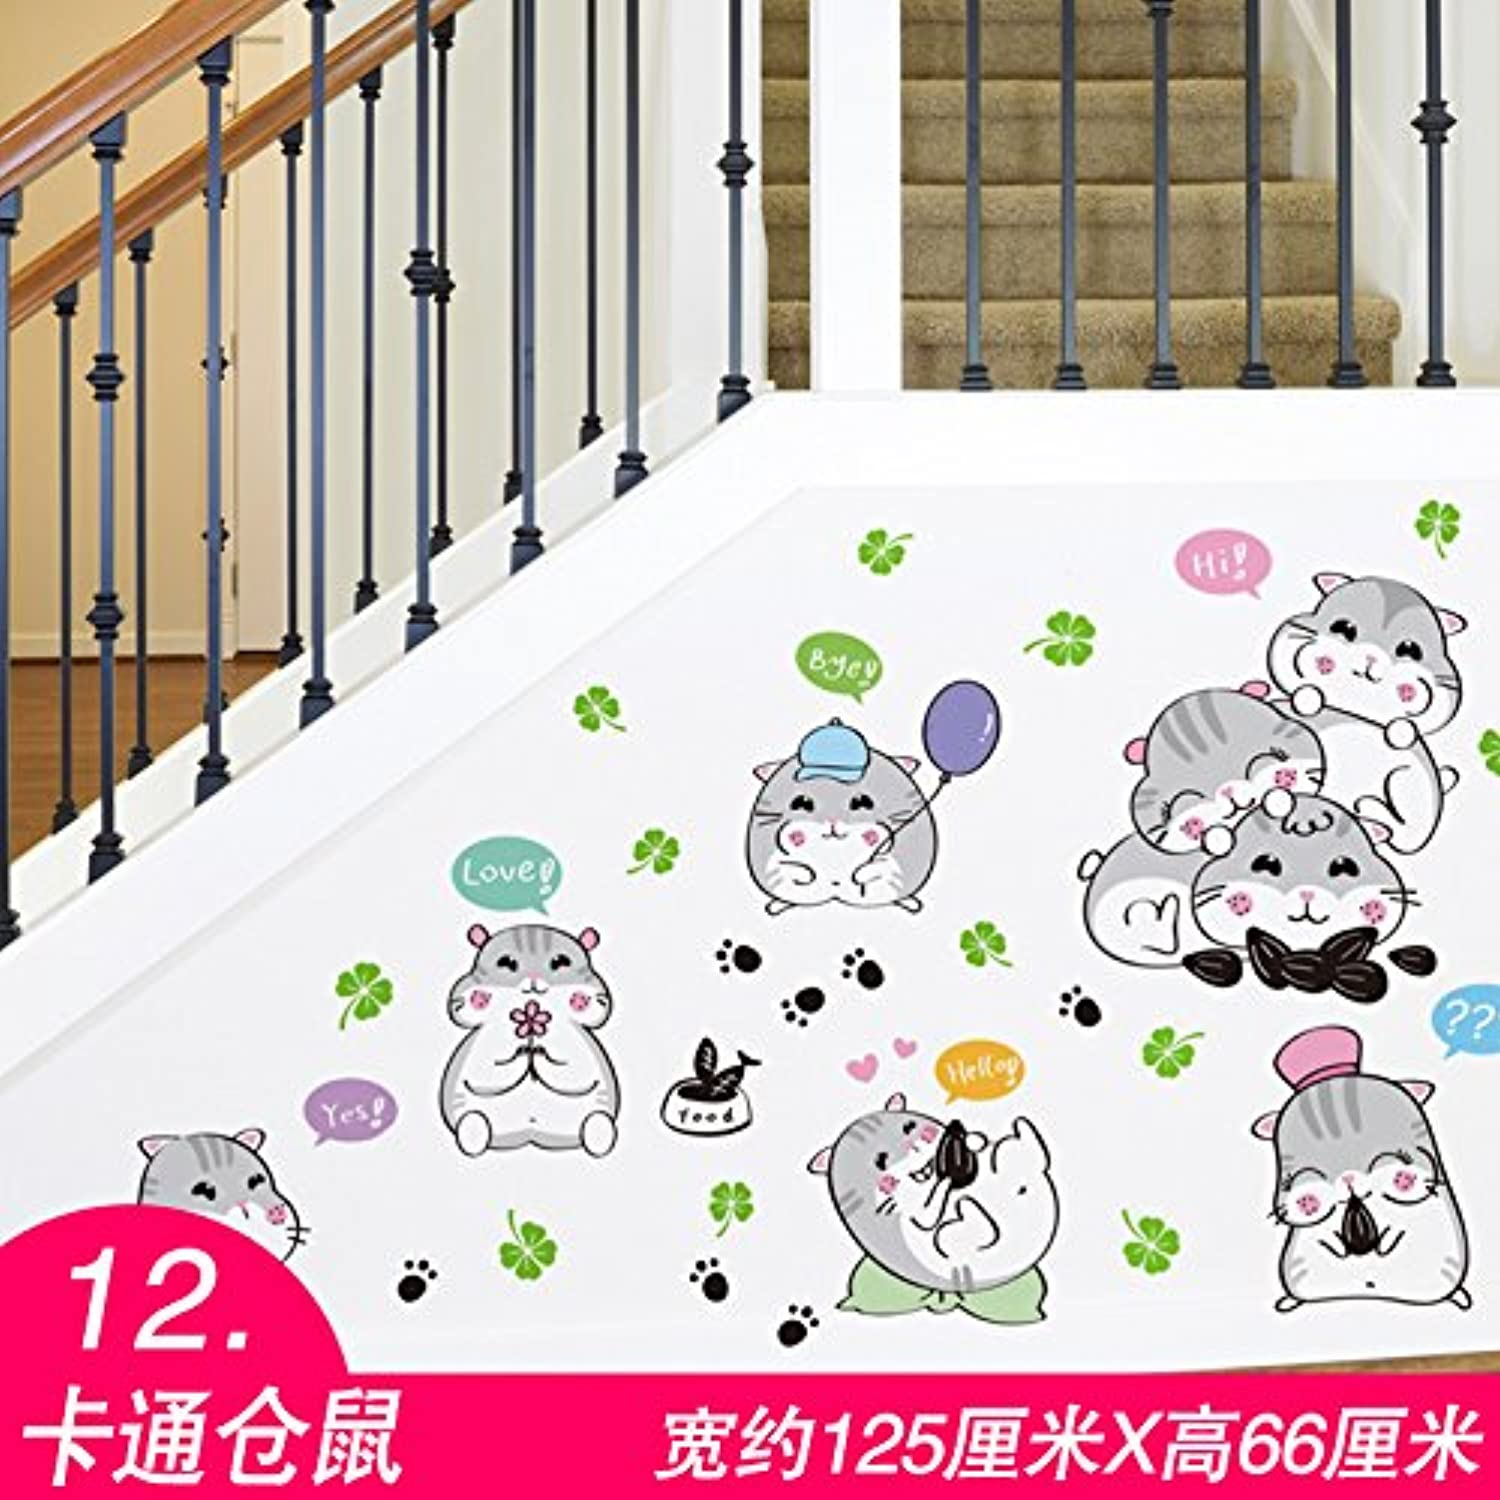 Znzbzt Room Wall Decorative Wall Sticker Sticker Bedroom Background SelfAdhesive Wallpaper, 12 Cartoon Hamster, Large